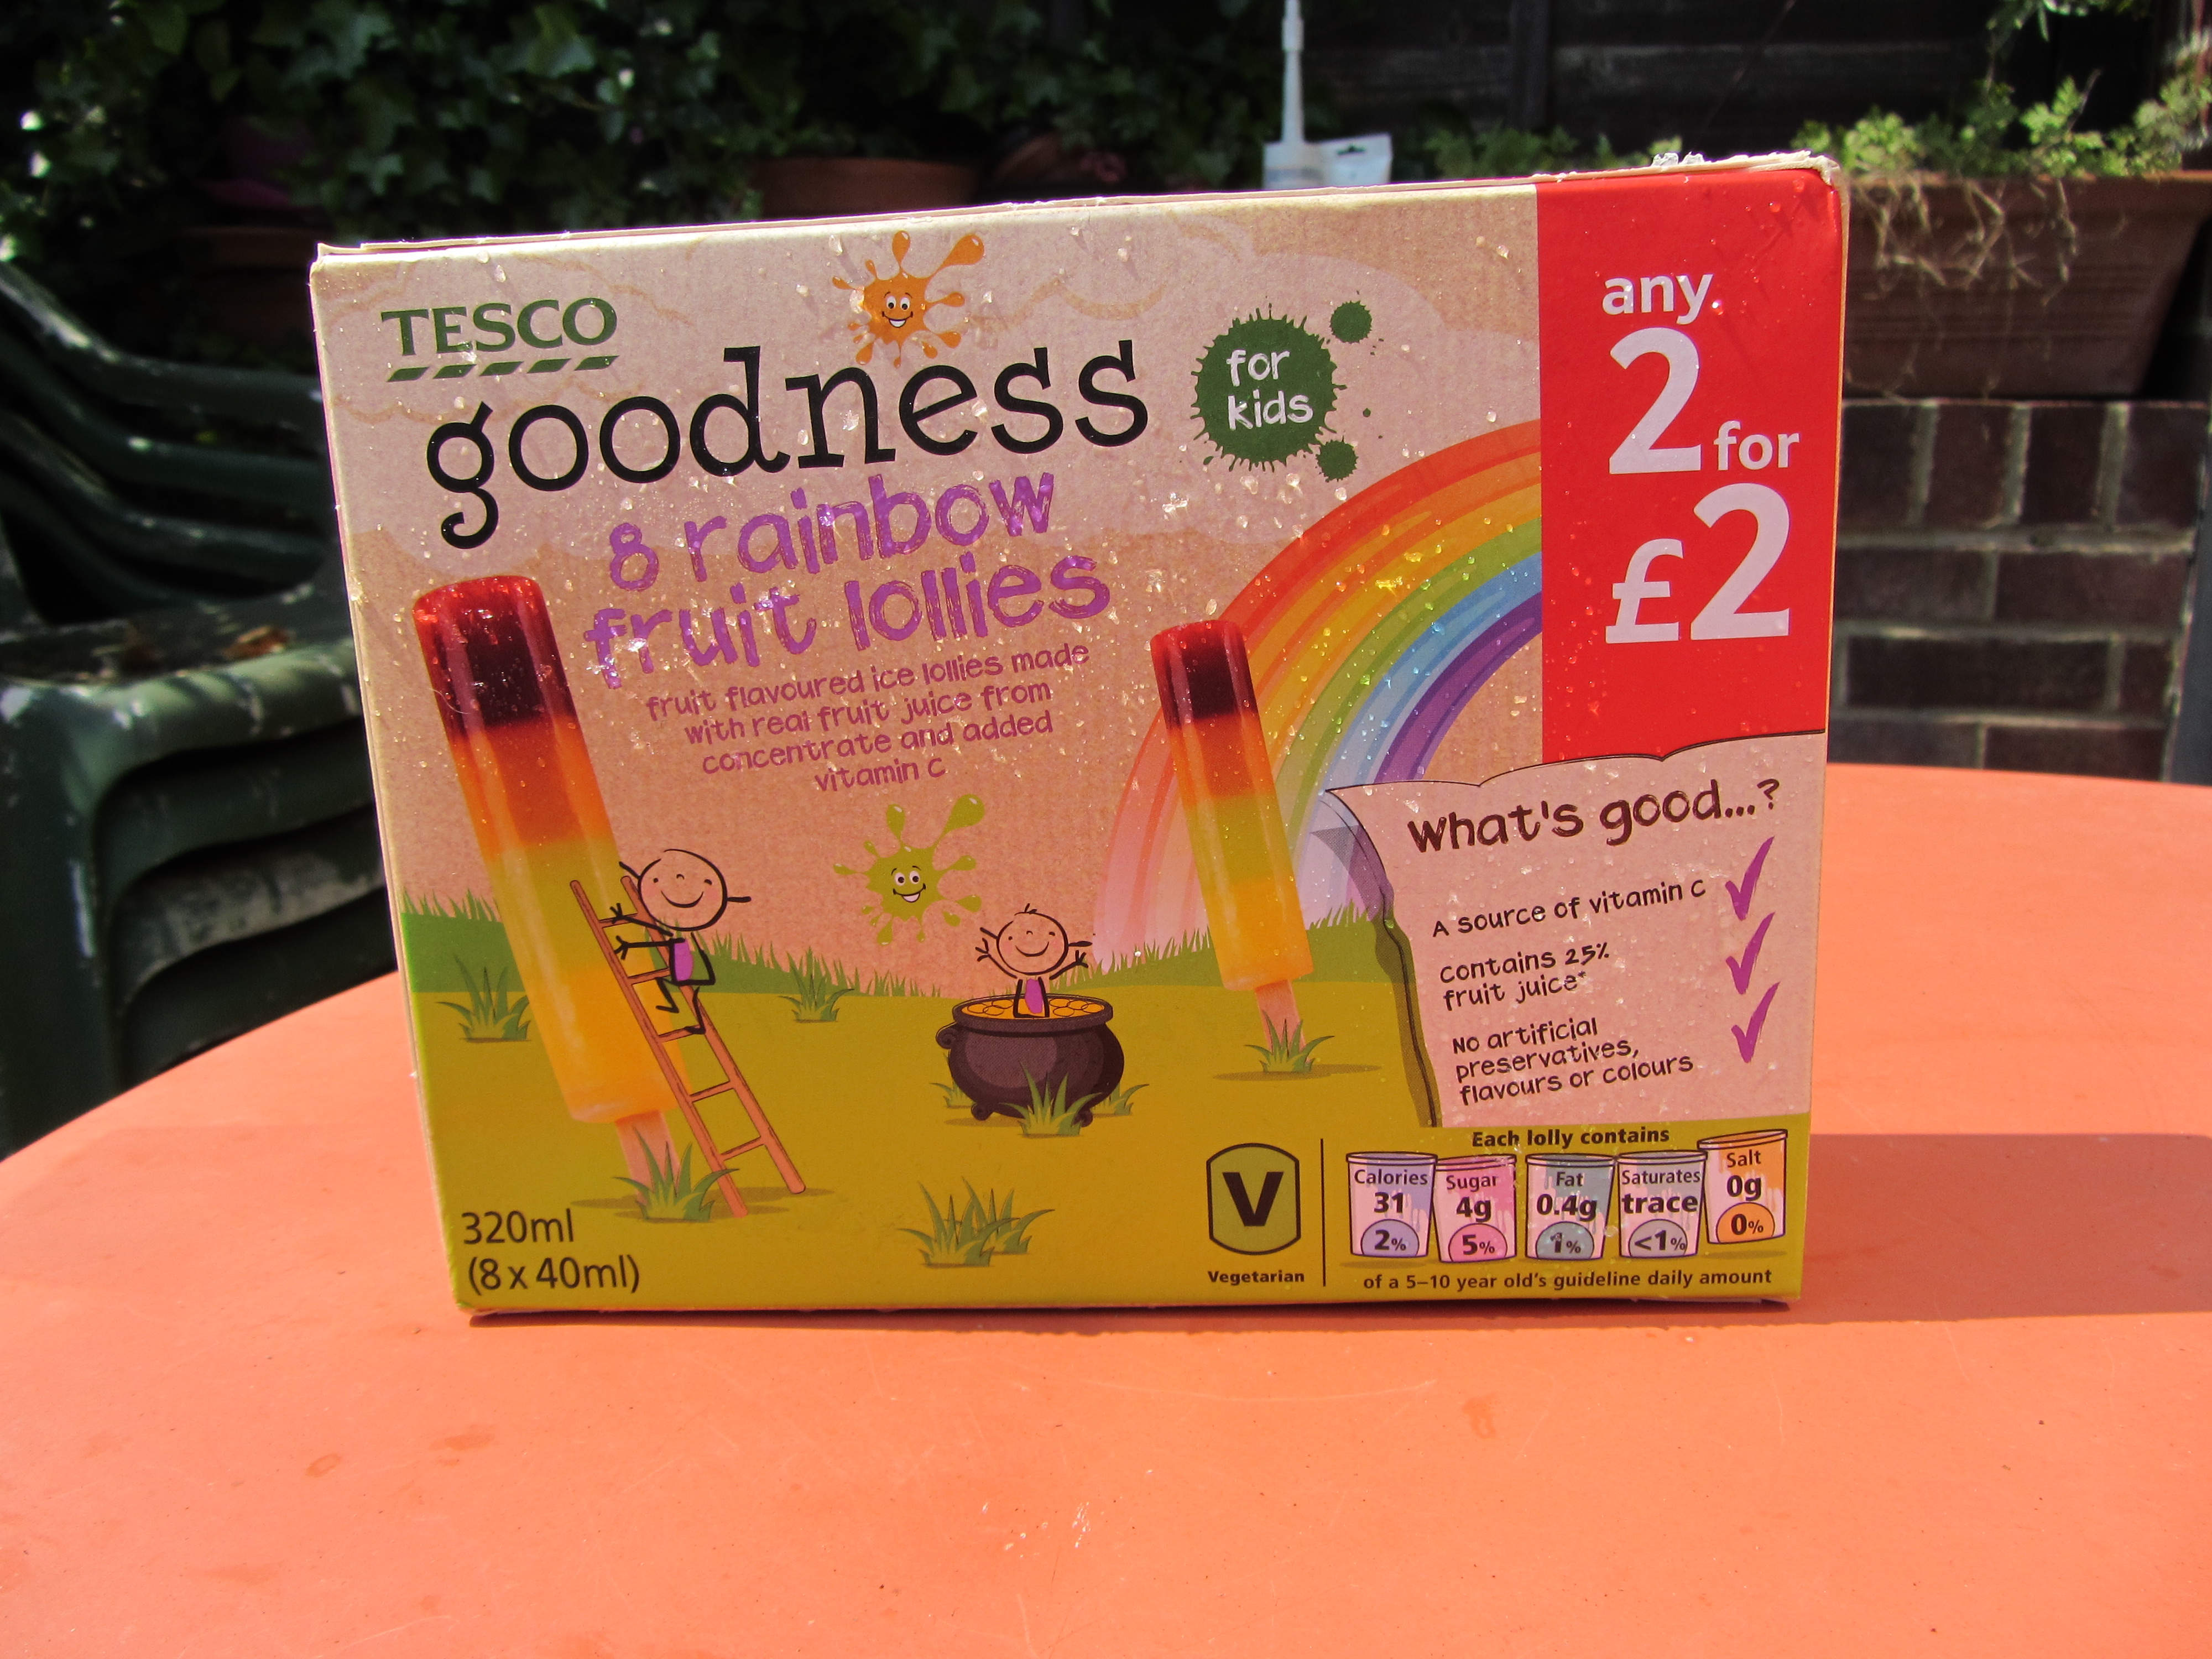 Ice Lollies Uk Brands And Why Tesco Come Out On Top Again